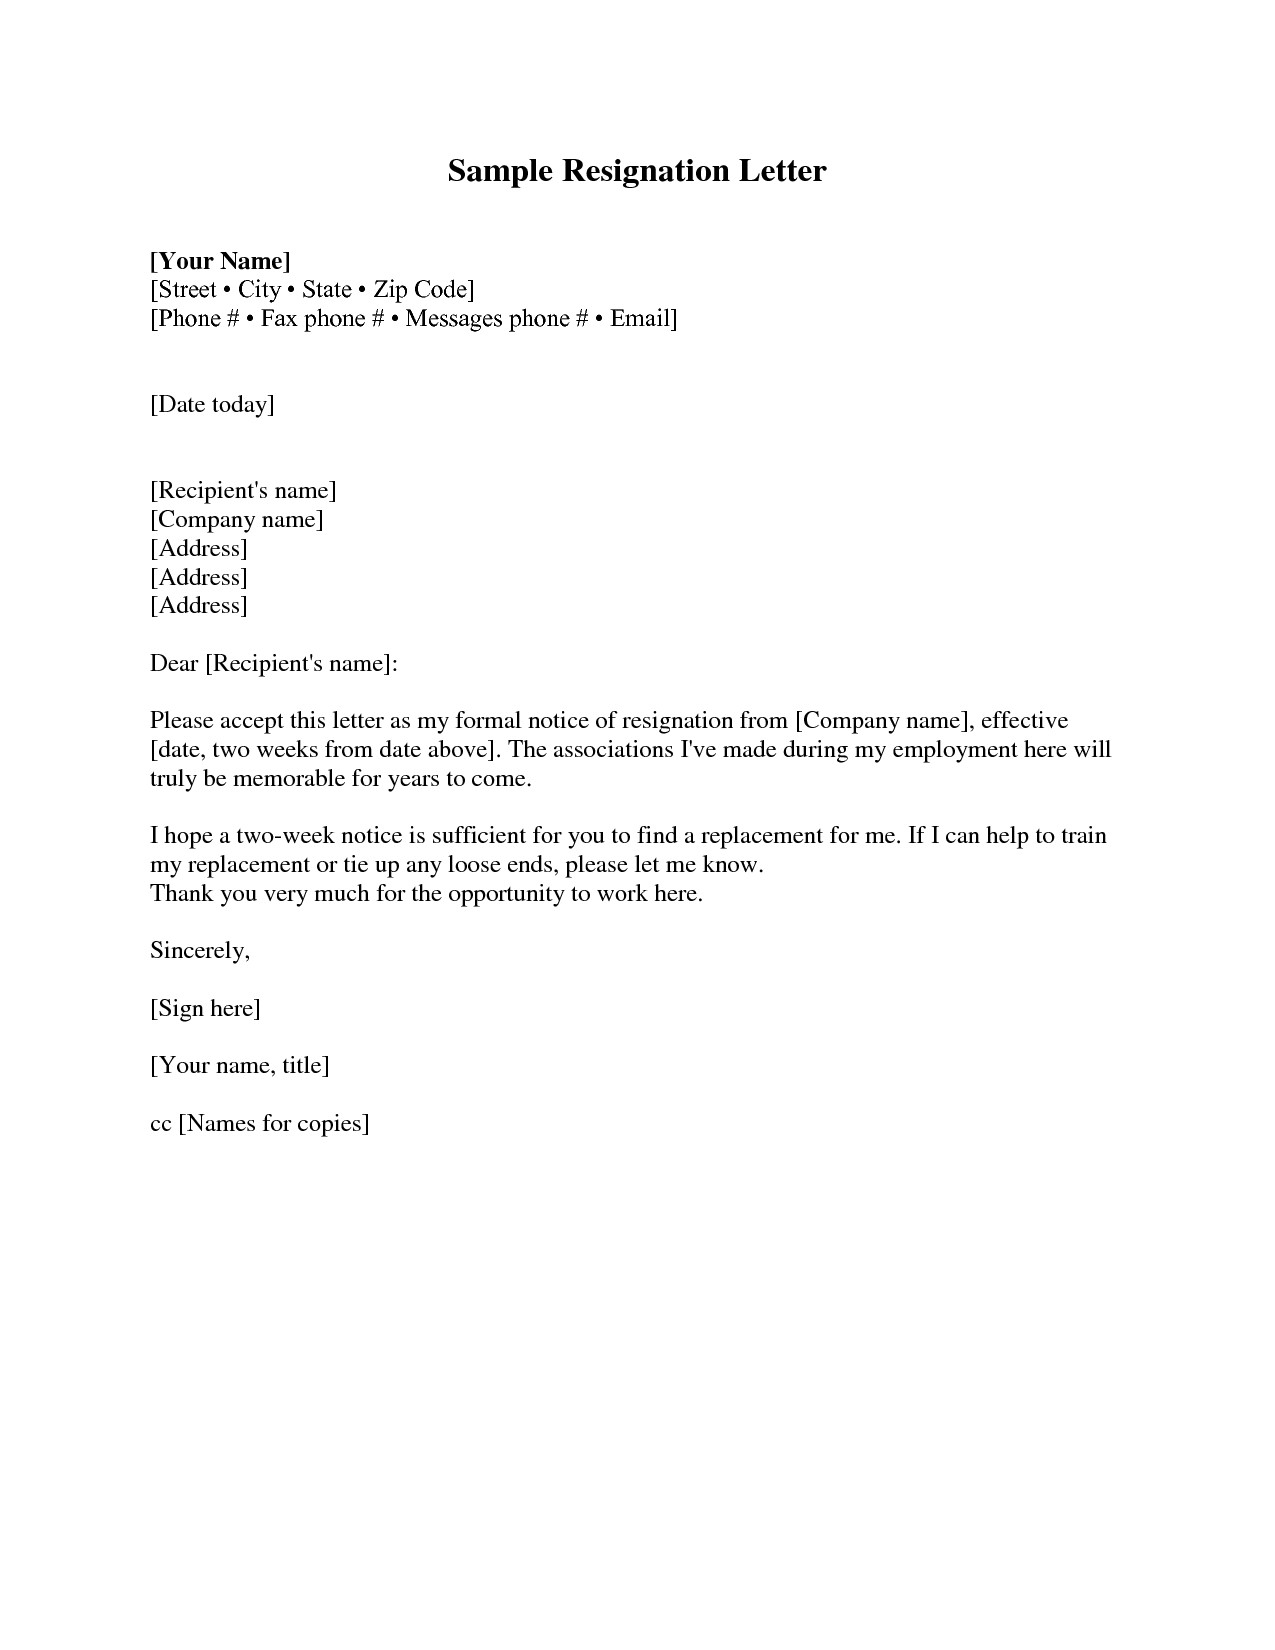 Free Resignation Letter Template Microsoft Word Download - Resignation Letter Examples 2 Weeks Notice Acurnamedia